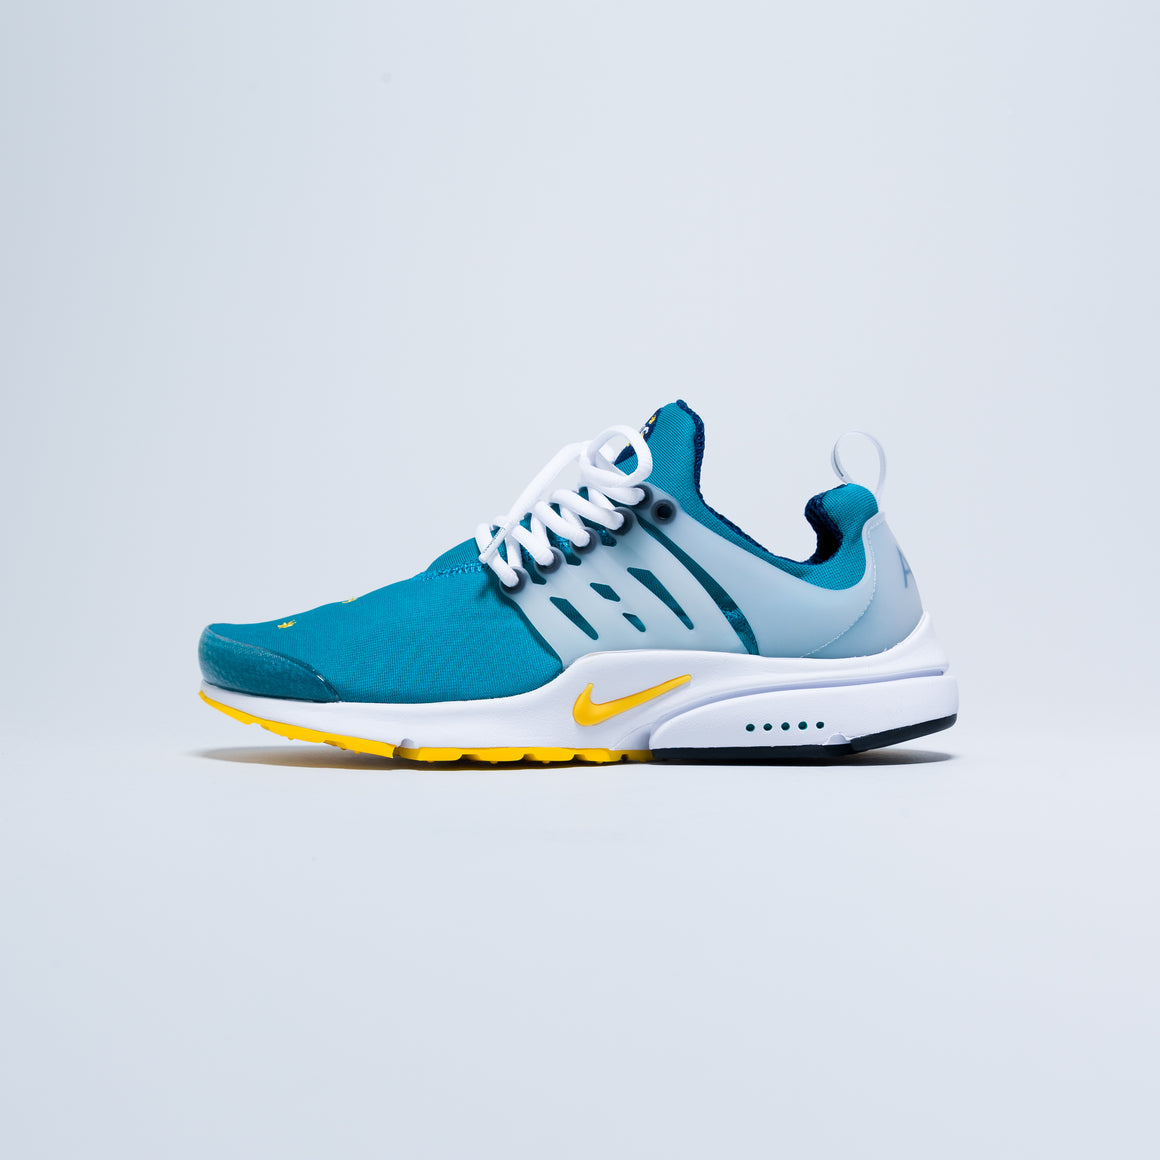 Air Presto - Fresh Water/Varsity Maize-Midnight Navy - Up There